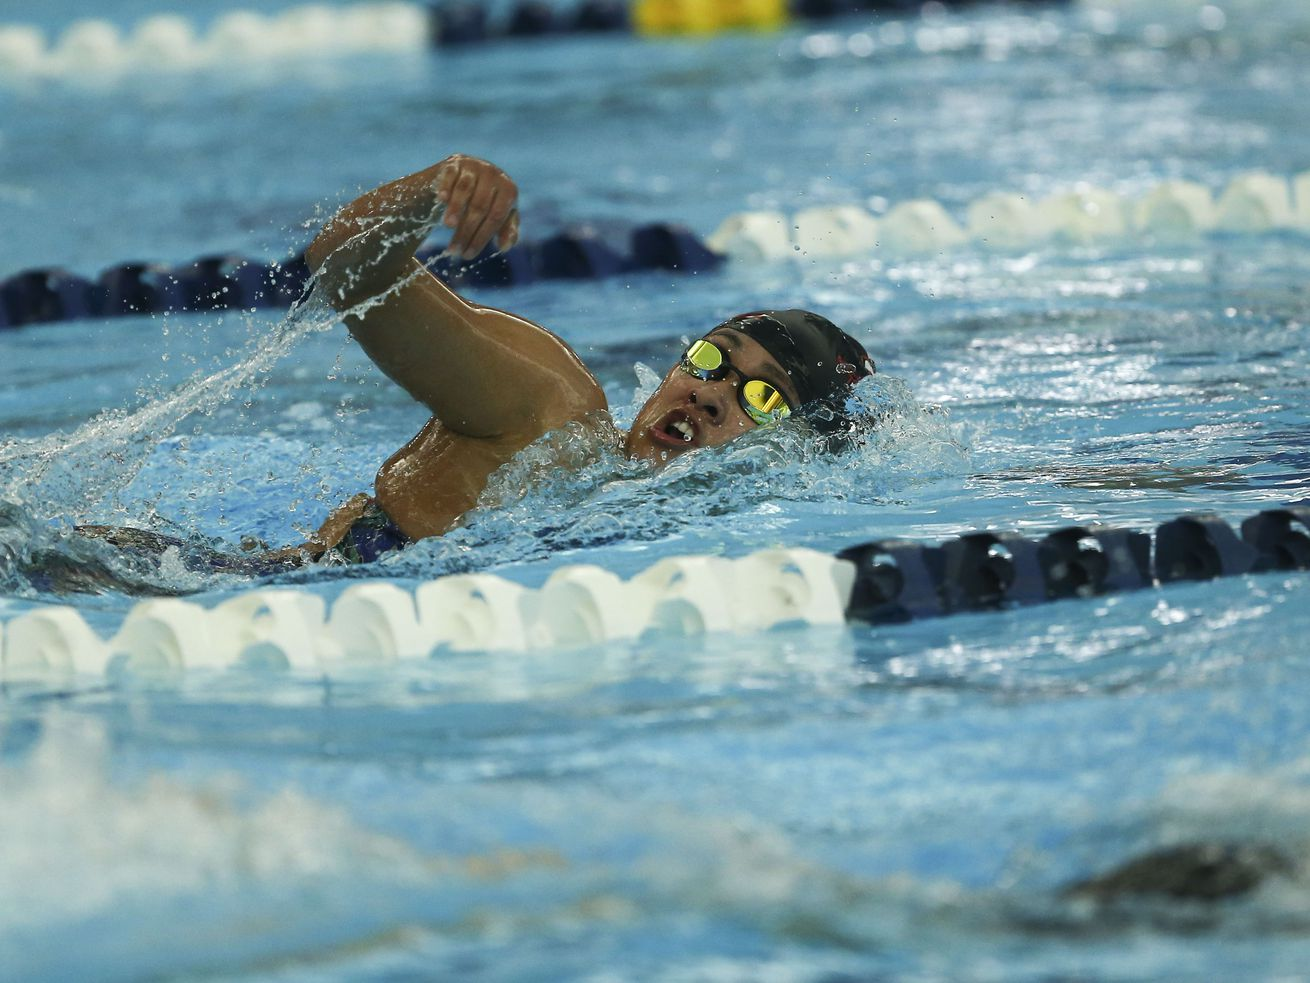 Allie Hill of American Fork High School swims during the 6A Swimming Championship at the Richards Building at BYU in Provo on Saturday, Feb. 9, 2019.